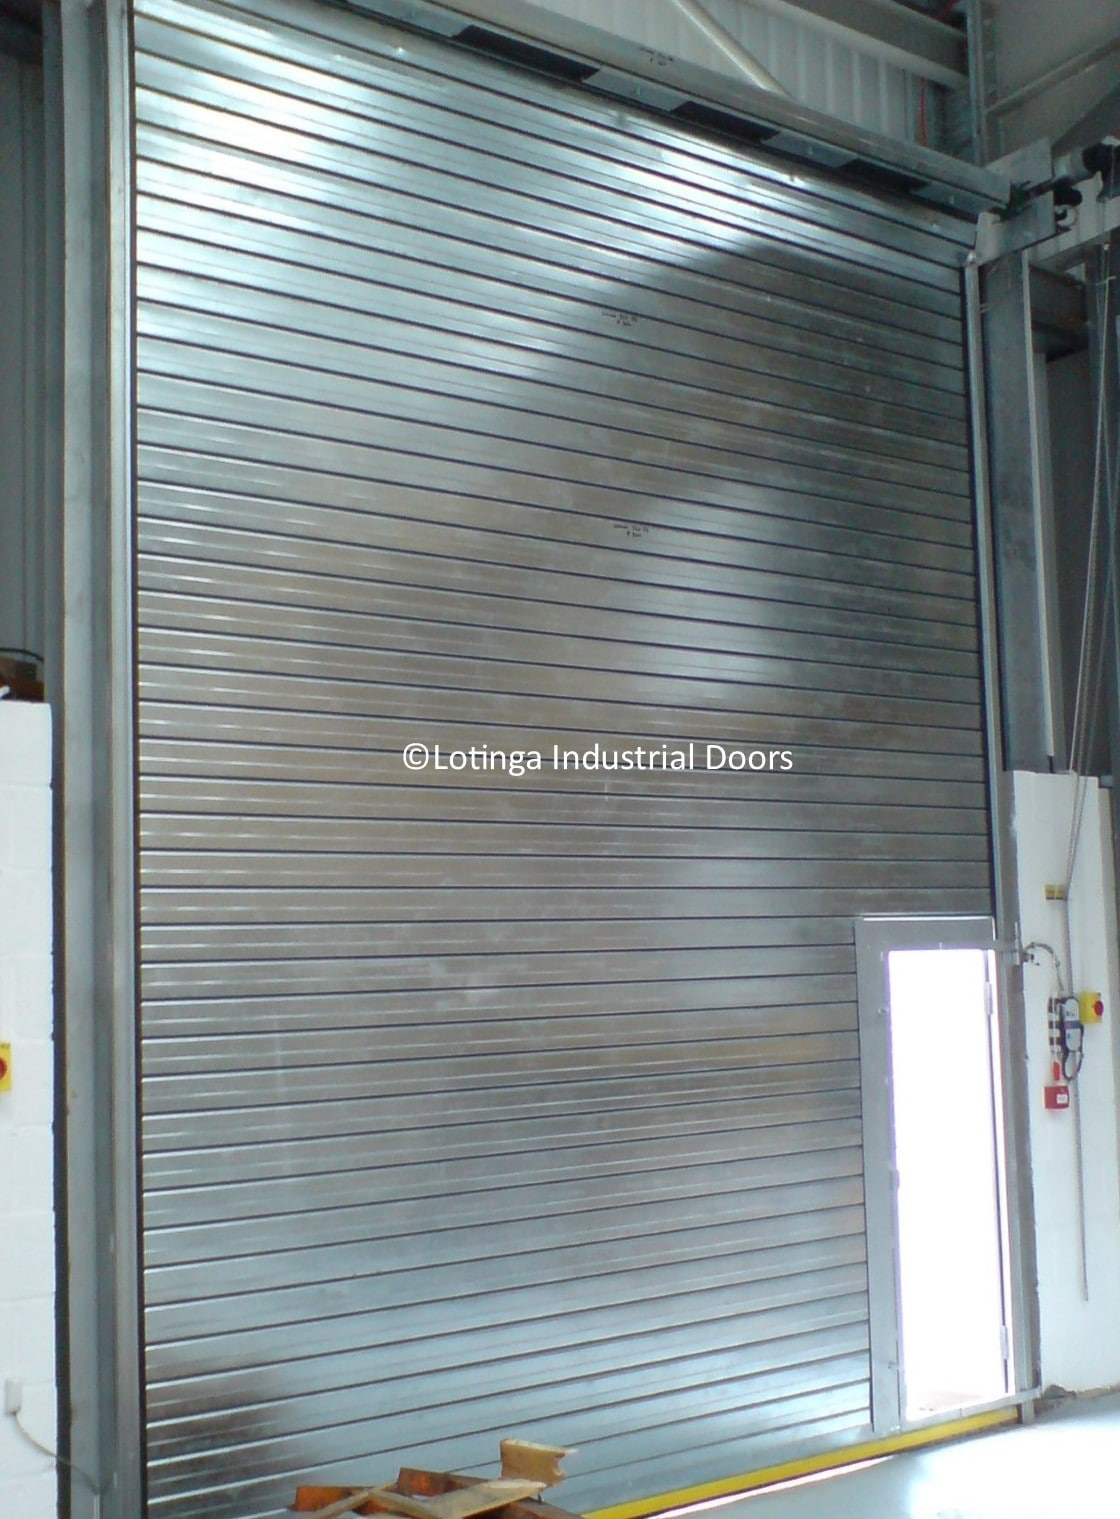 insulated-electric-shutter-with-wicket-gate-min Roller Shutters / Roller Doors